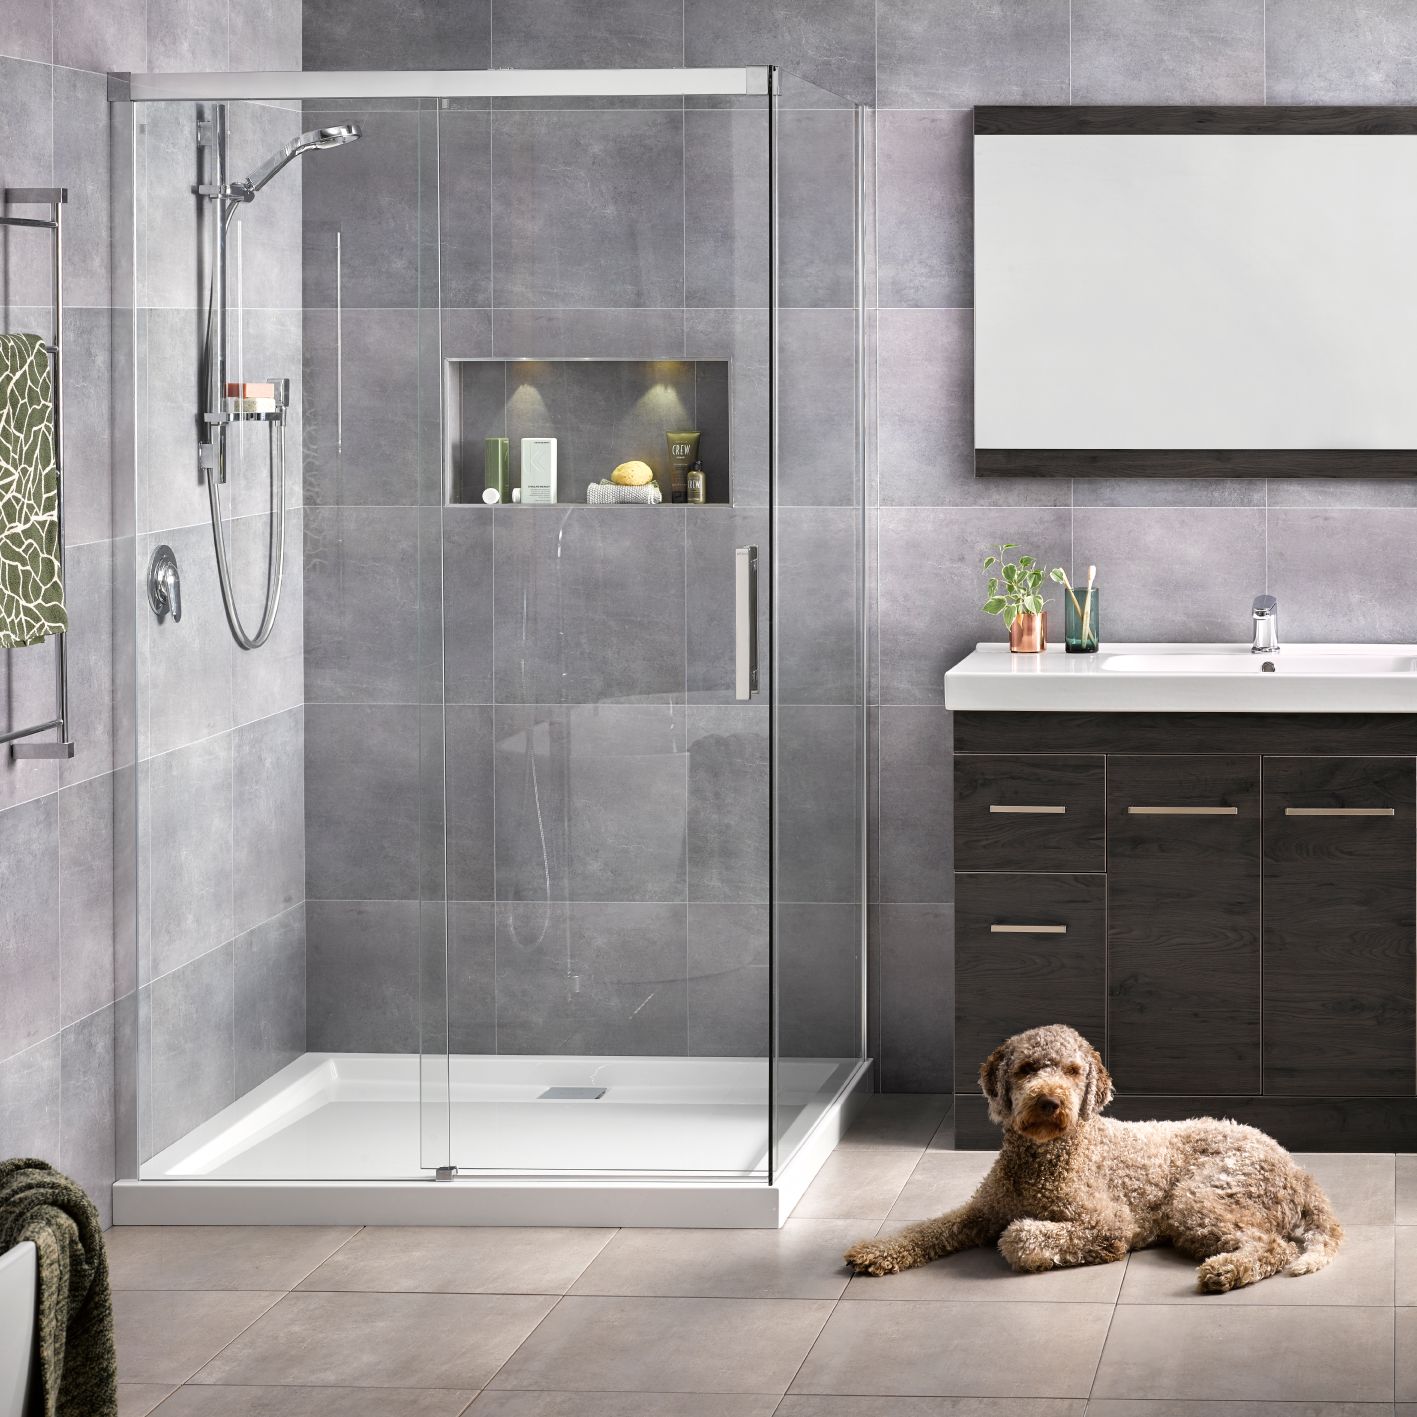 Motio 1000x1200 2 Sided Shower on Tiled Wall - RRP $2830